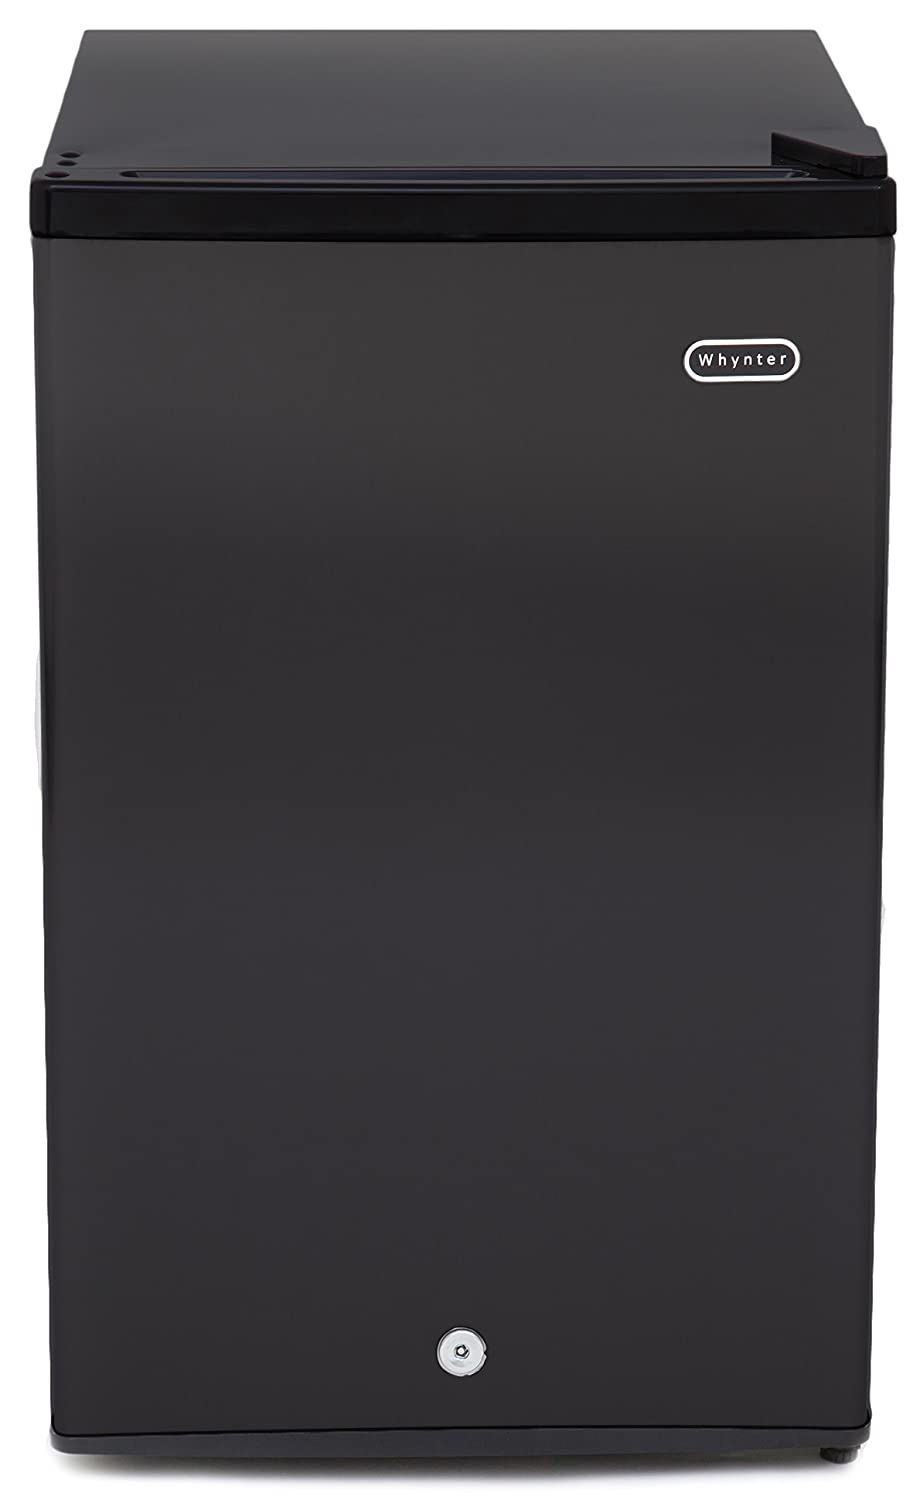 Whynter CUF-301BK 3.0 cu. ft. Energy Star Upright Freezer with Lock, Black Whynter Small Appliances